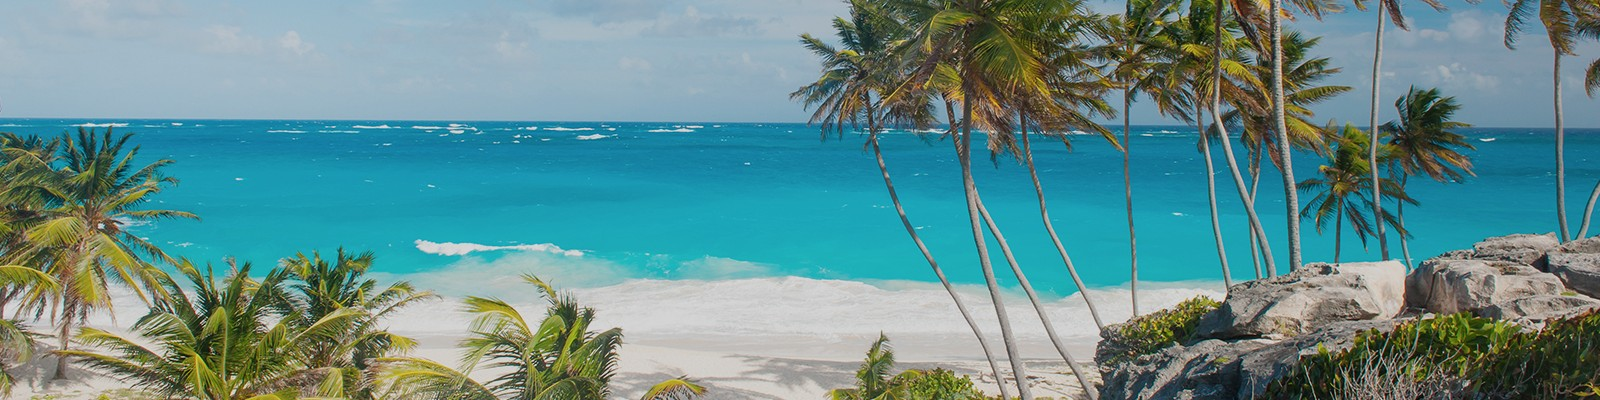 barbados-luxury holidays header